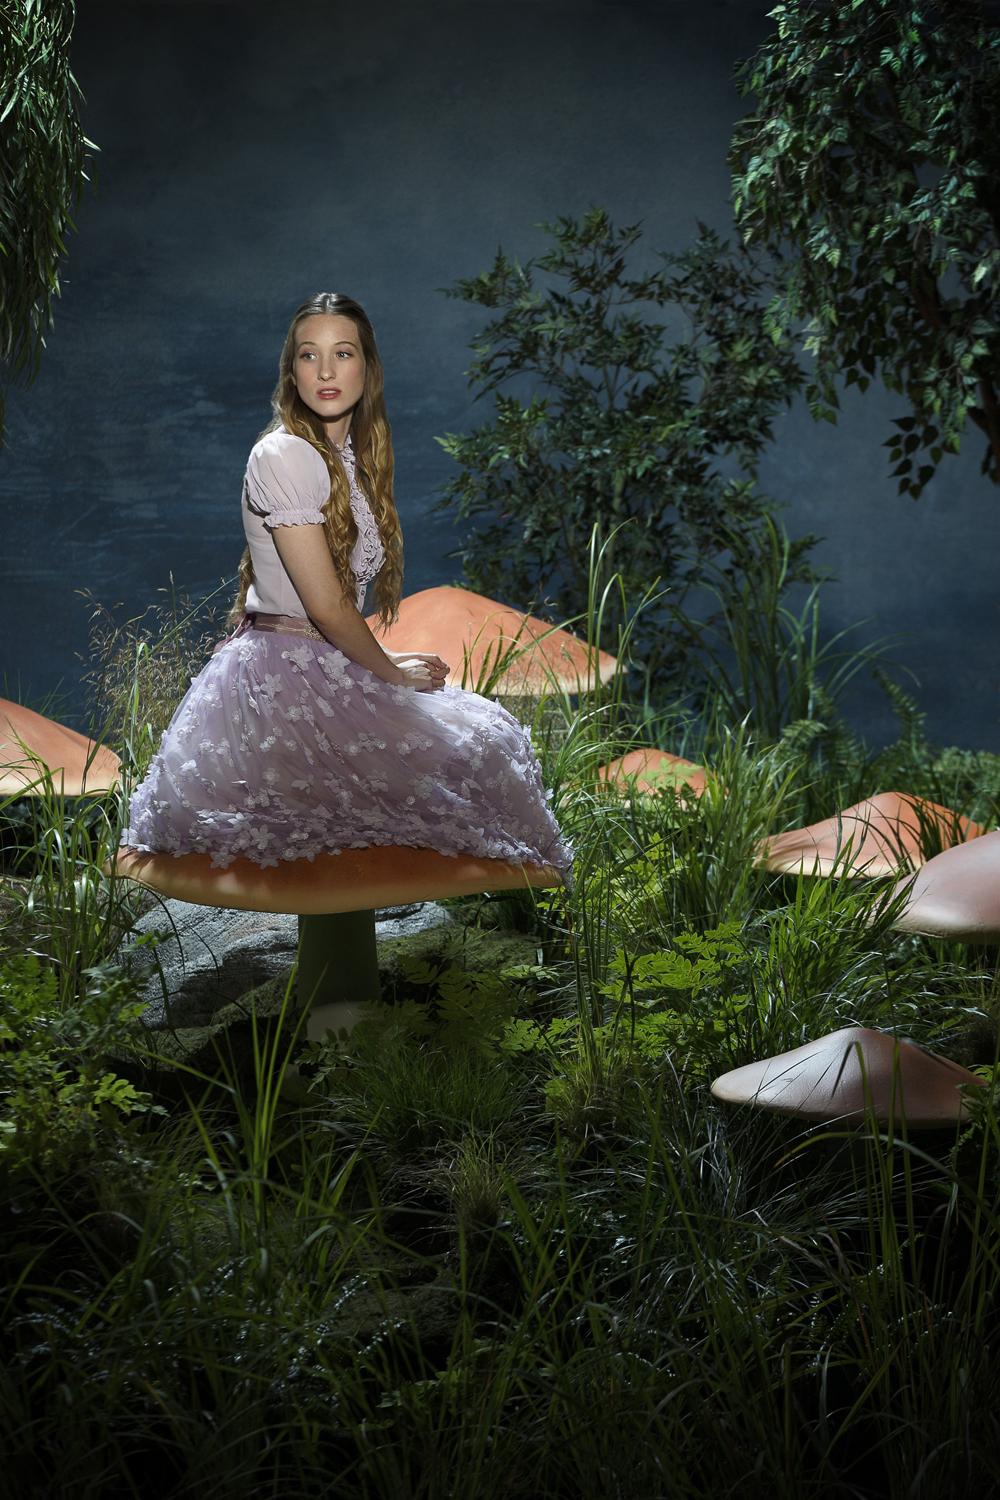 http://www.scifistream.com/wp-content/gallery/once-wonderland-cast-photos/cast_season1_alice.jpg